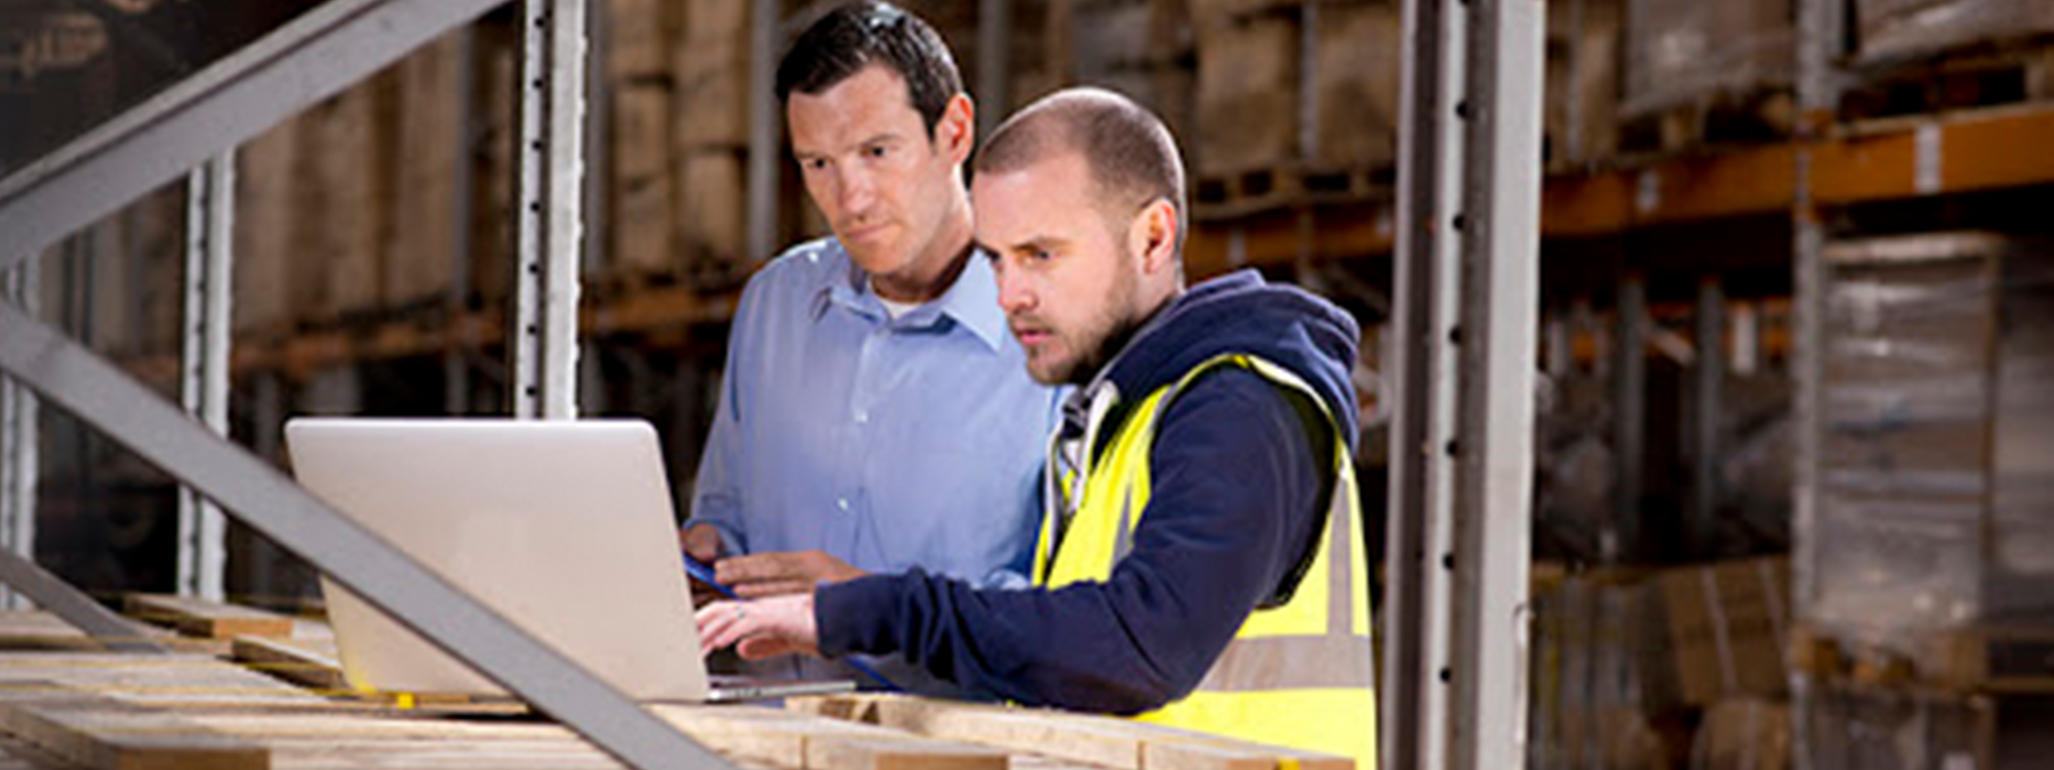 This image shows two men looking at a laptop inside of a warehouse. The man on the left is wearing a blue button down, and the man on the right is wearing a reflective vest. They are both looking at the computer screen.